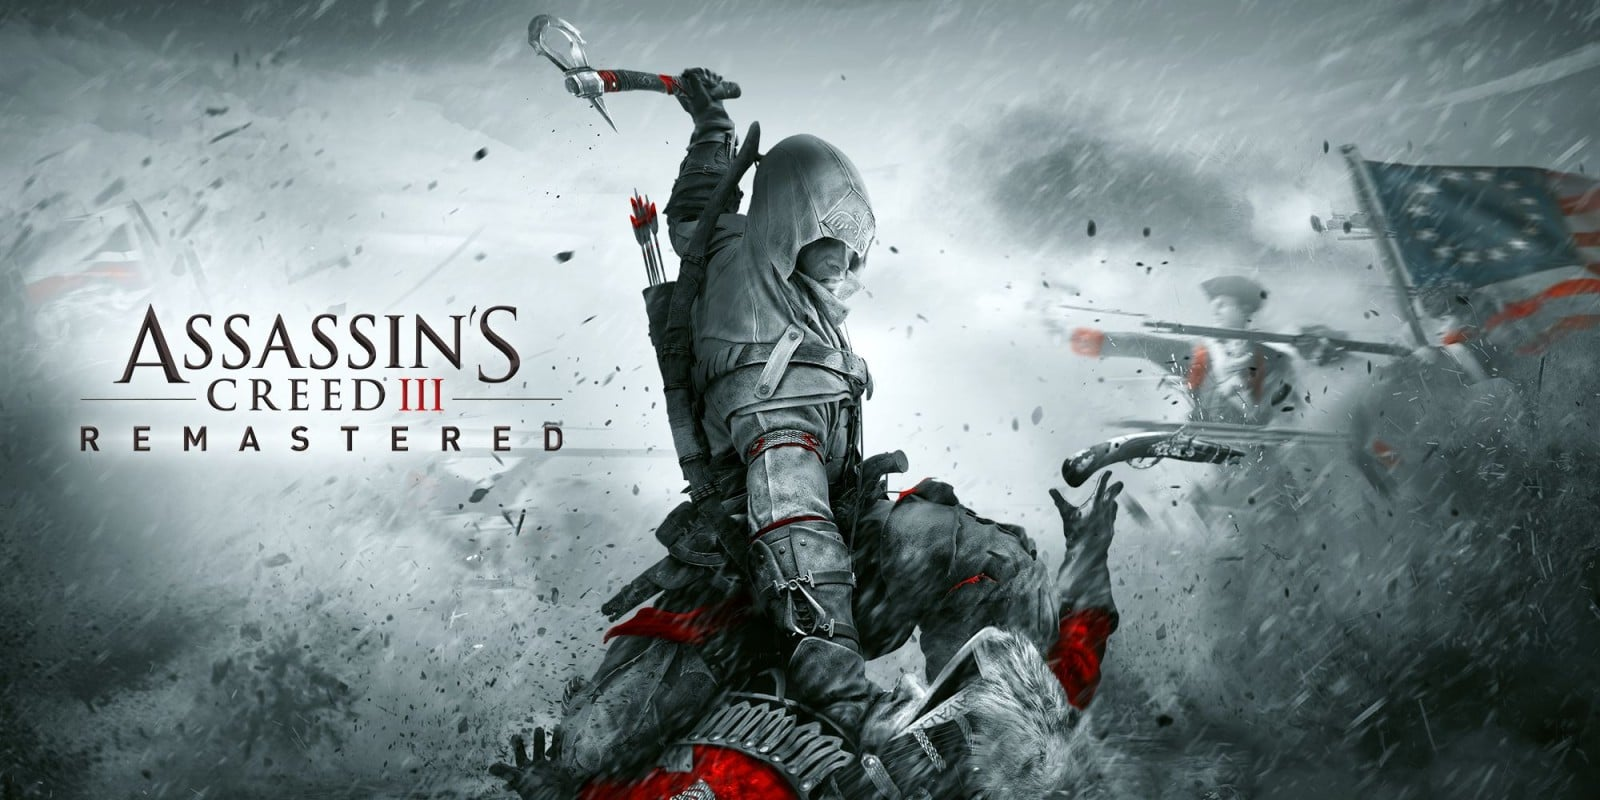 Assassin's Creed III Remastered details